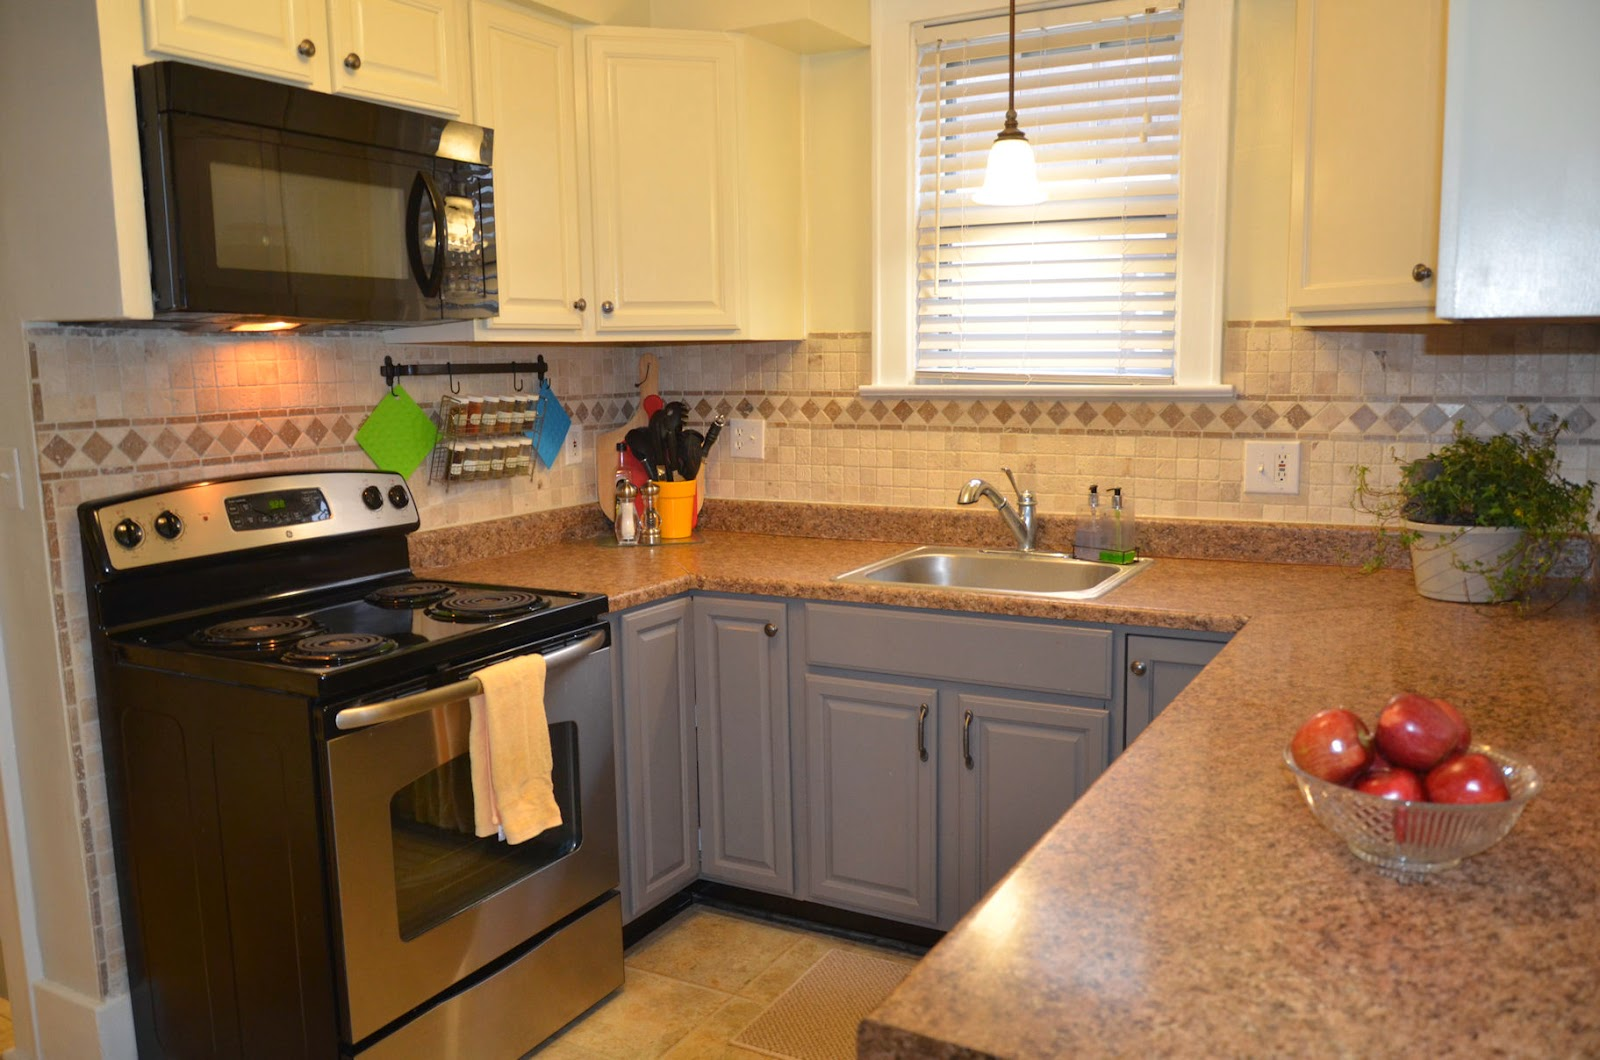 Our Kitchen and Butler's Pantry : To see more details regarding our